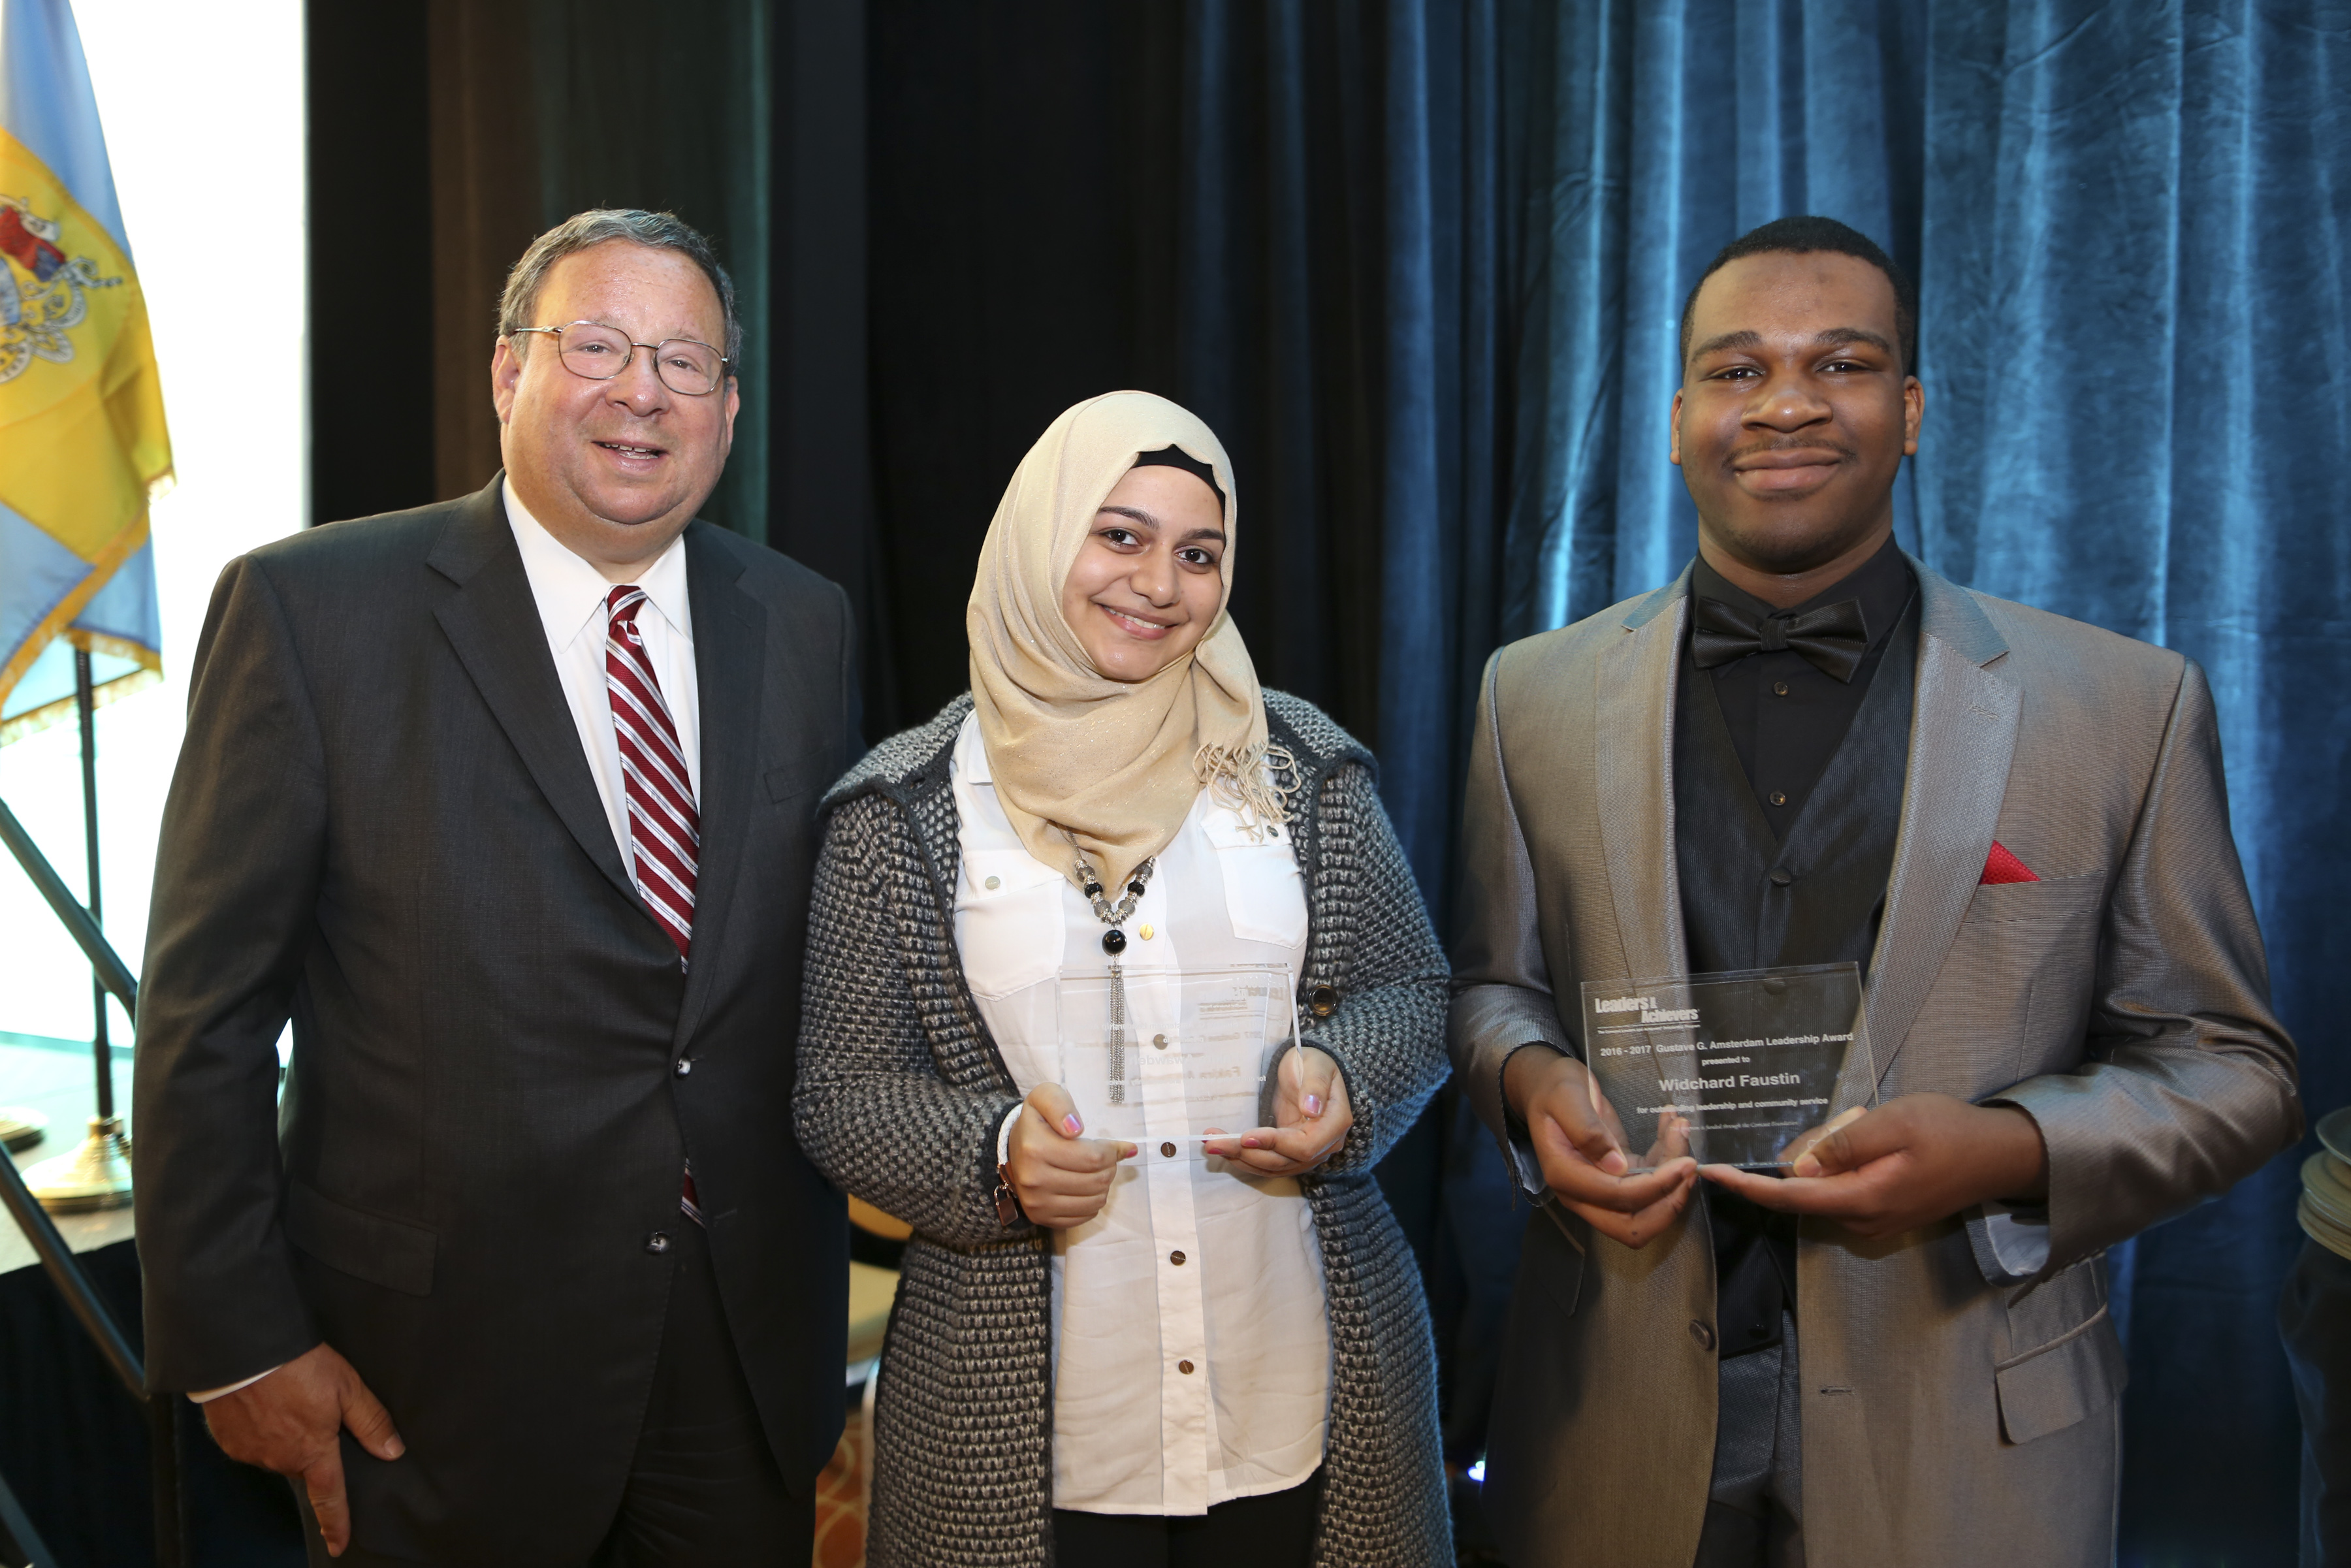 David L. Cohen, Senior Executive Vice President & Chief Diversity Officer poses with the Gustave G. Amsterdam Leadership Award recipients Fakira Awawdeh and Widchard Faustin on Thursday Feb. 2, 2017, during the Chamber of Commerce for Greater Philadelphia's Annual Mayor's Luncheon in Philadelphia.  (Comcast Photo/ Joseph Kaczmarek)